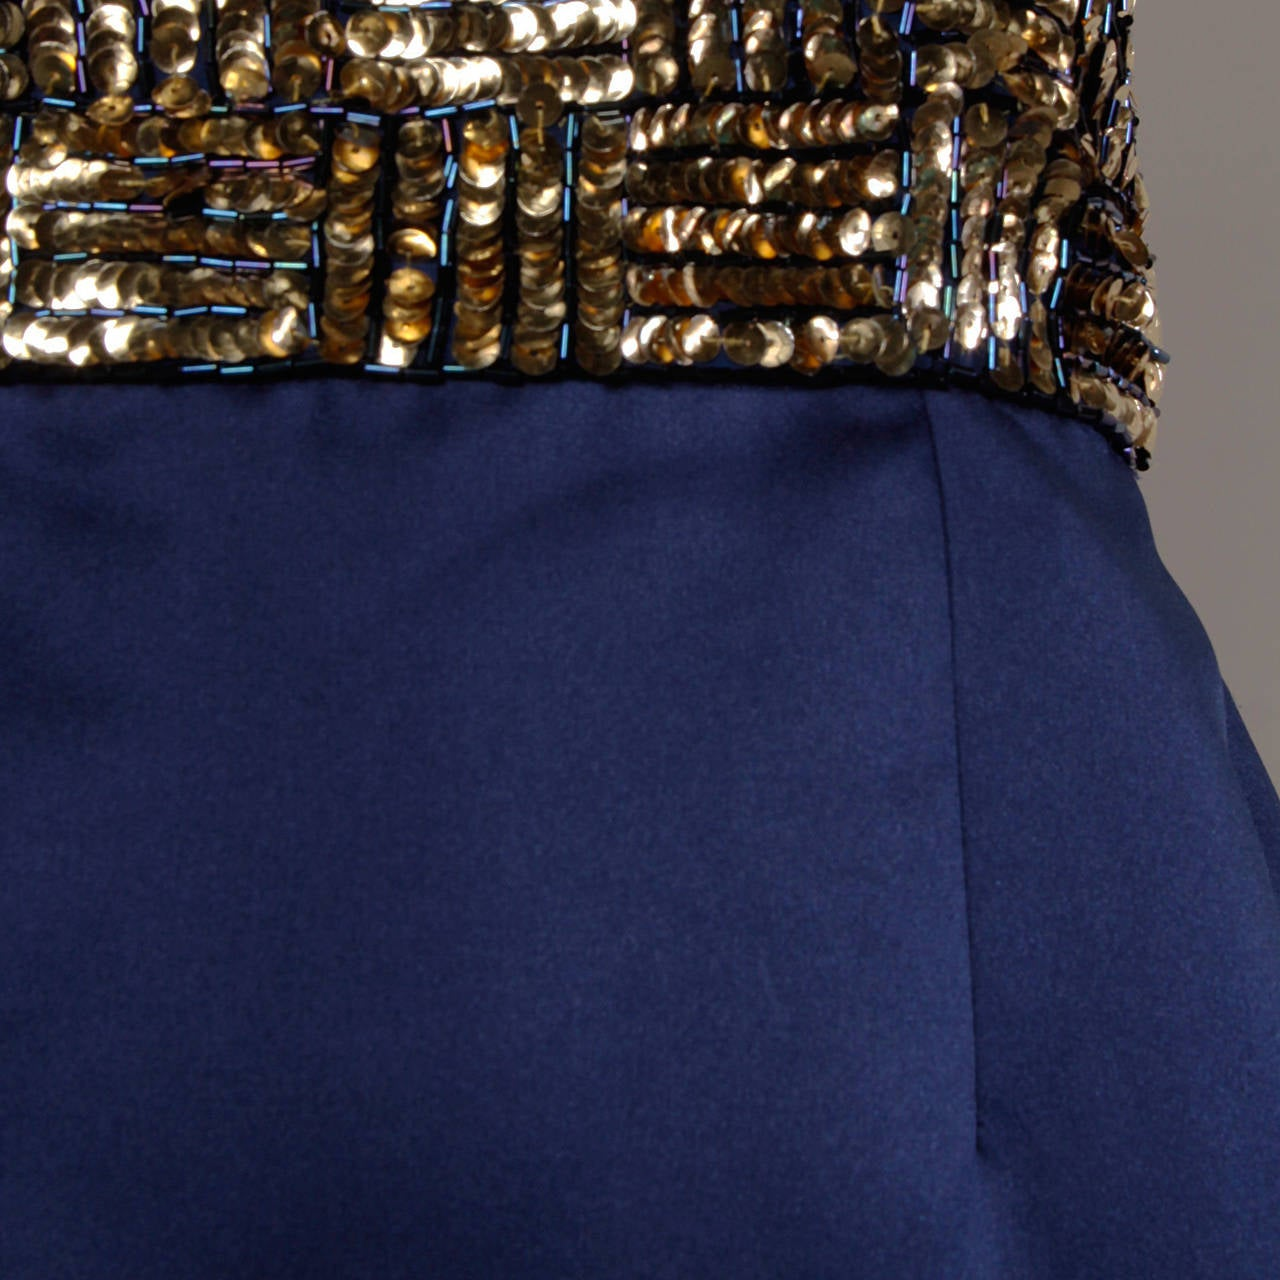 Bill Blass Vintage Metallic Gold & Blue Sequin + Beaded Cocktail Dress For Sale 1